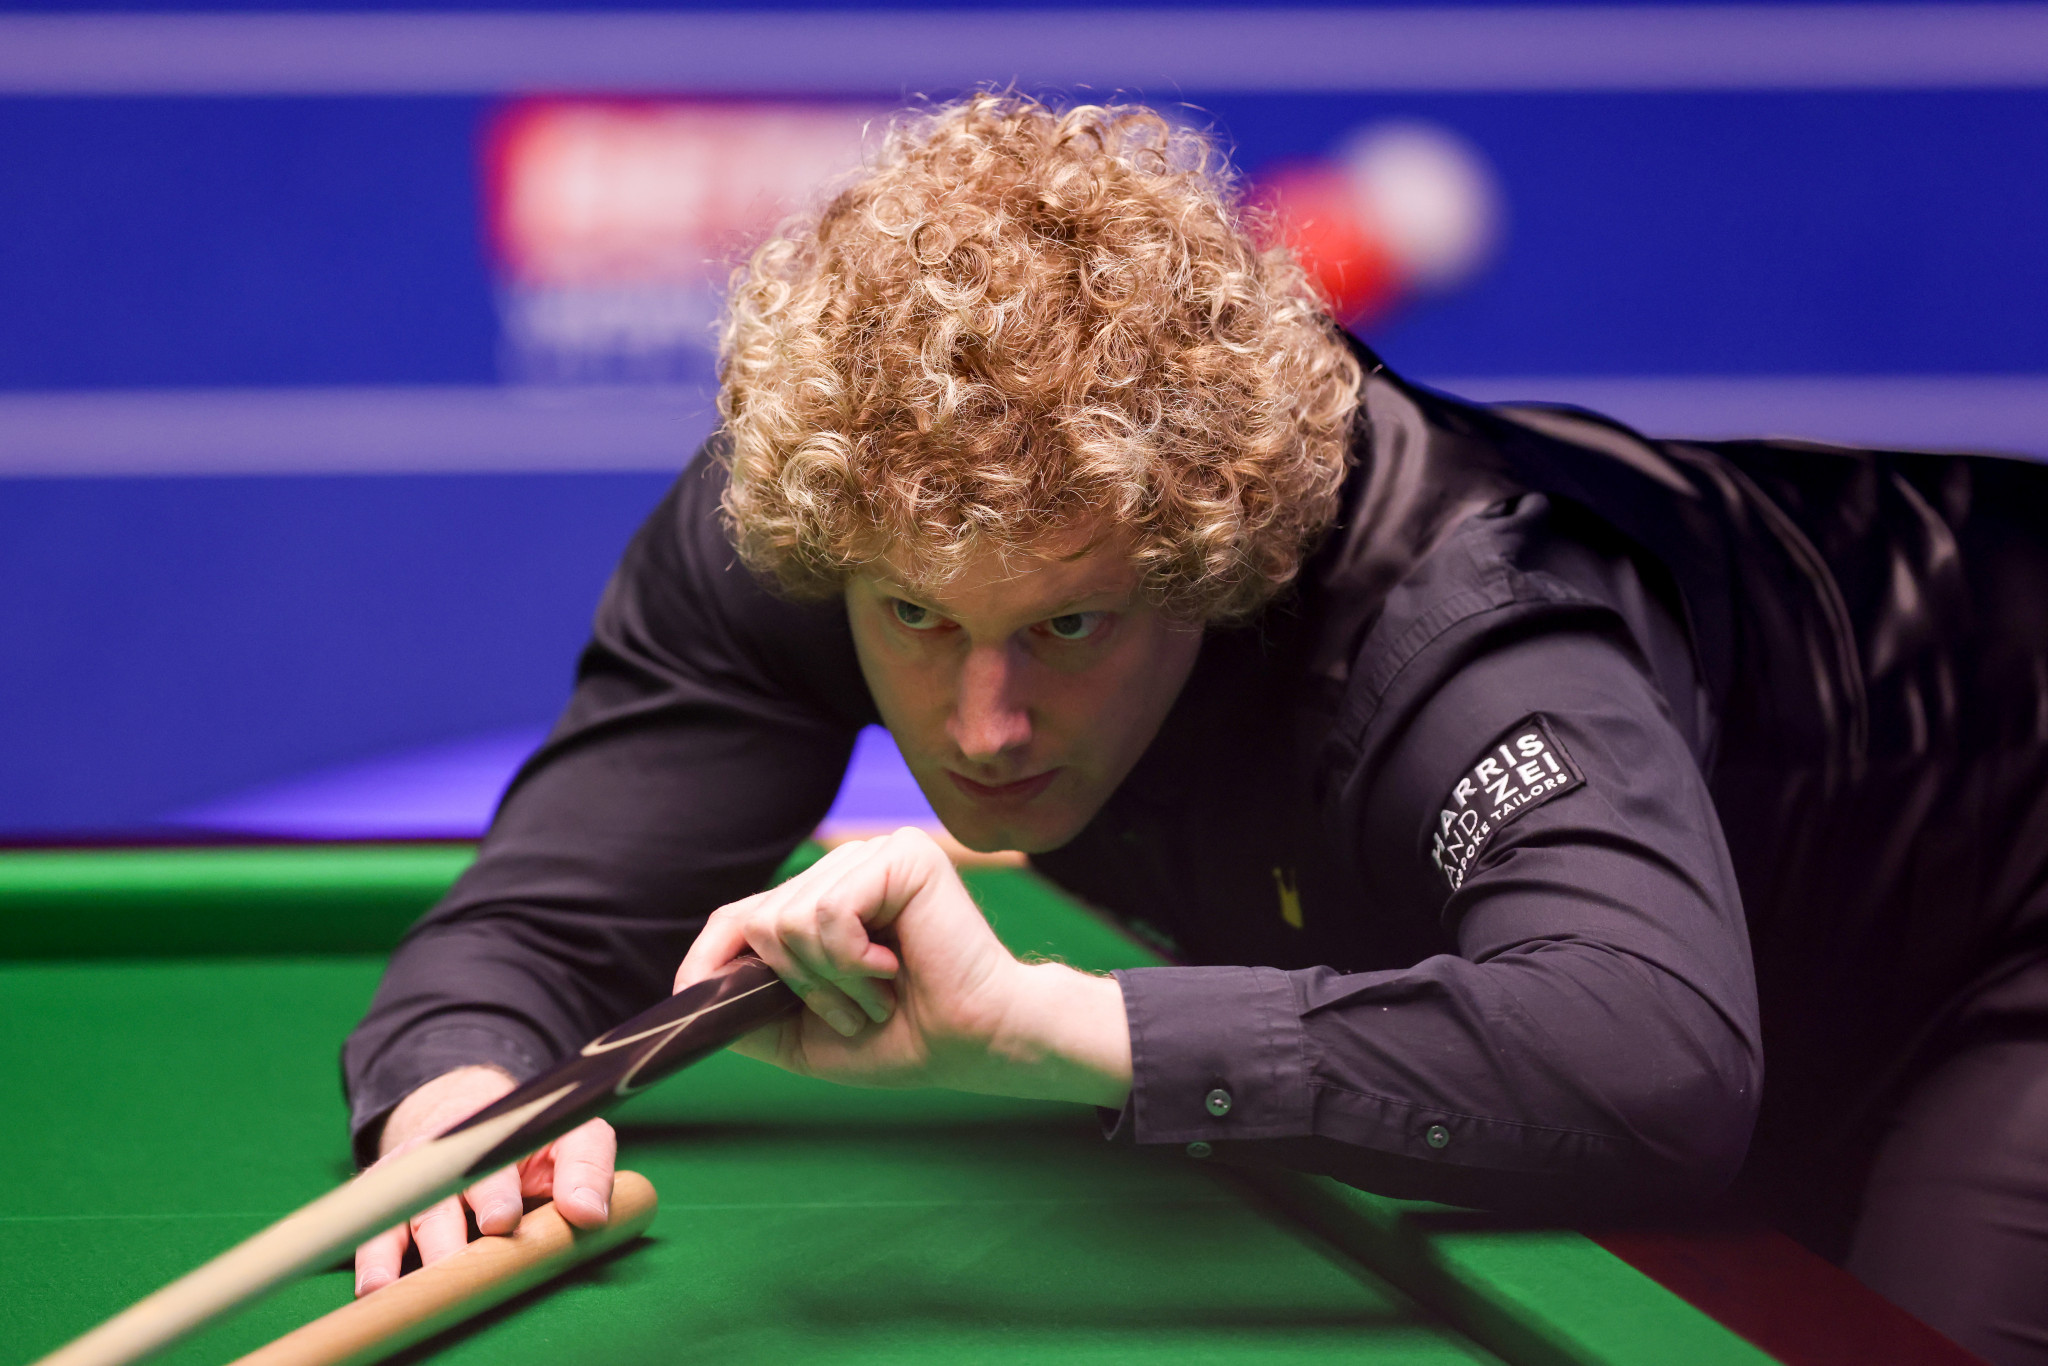 Australia's Neil Robertson leads England's Jack Lisowski 9-7 after two sessions of their World Snooker Championship second round match ©Getty Images